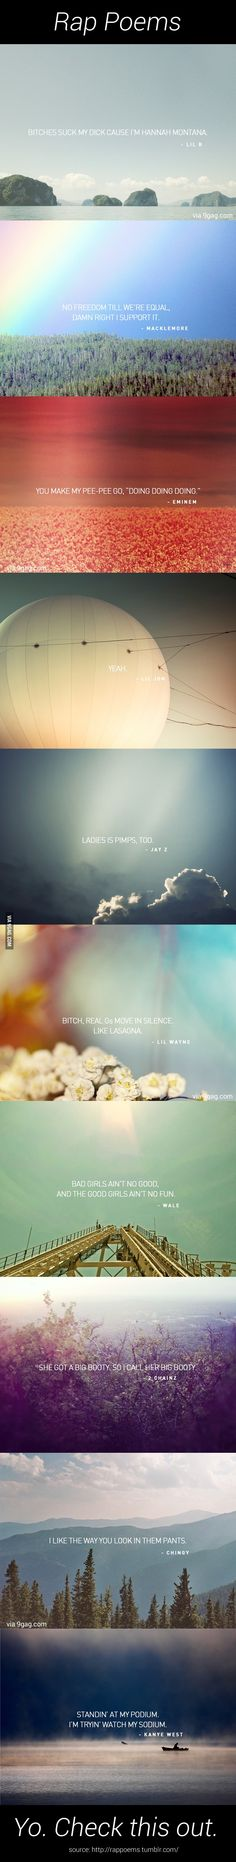 Rap lyrics (Macklemore's is actually kind of poetic, but the rest just make me laugh)